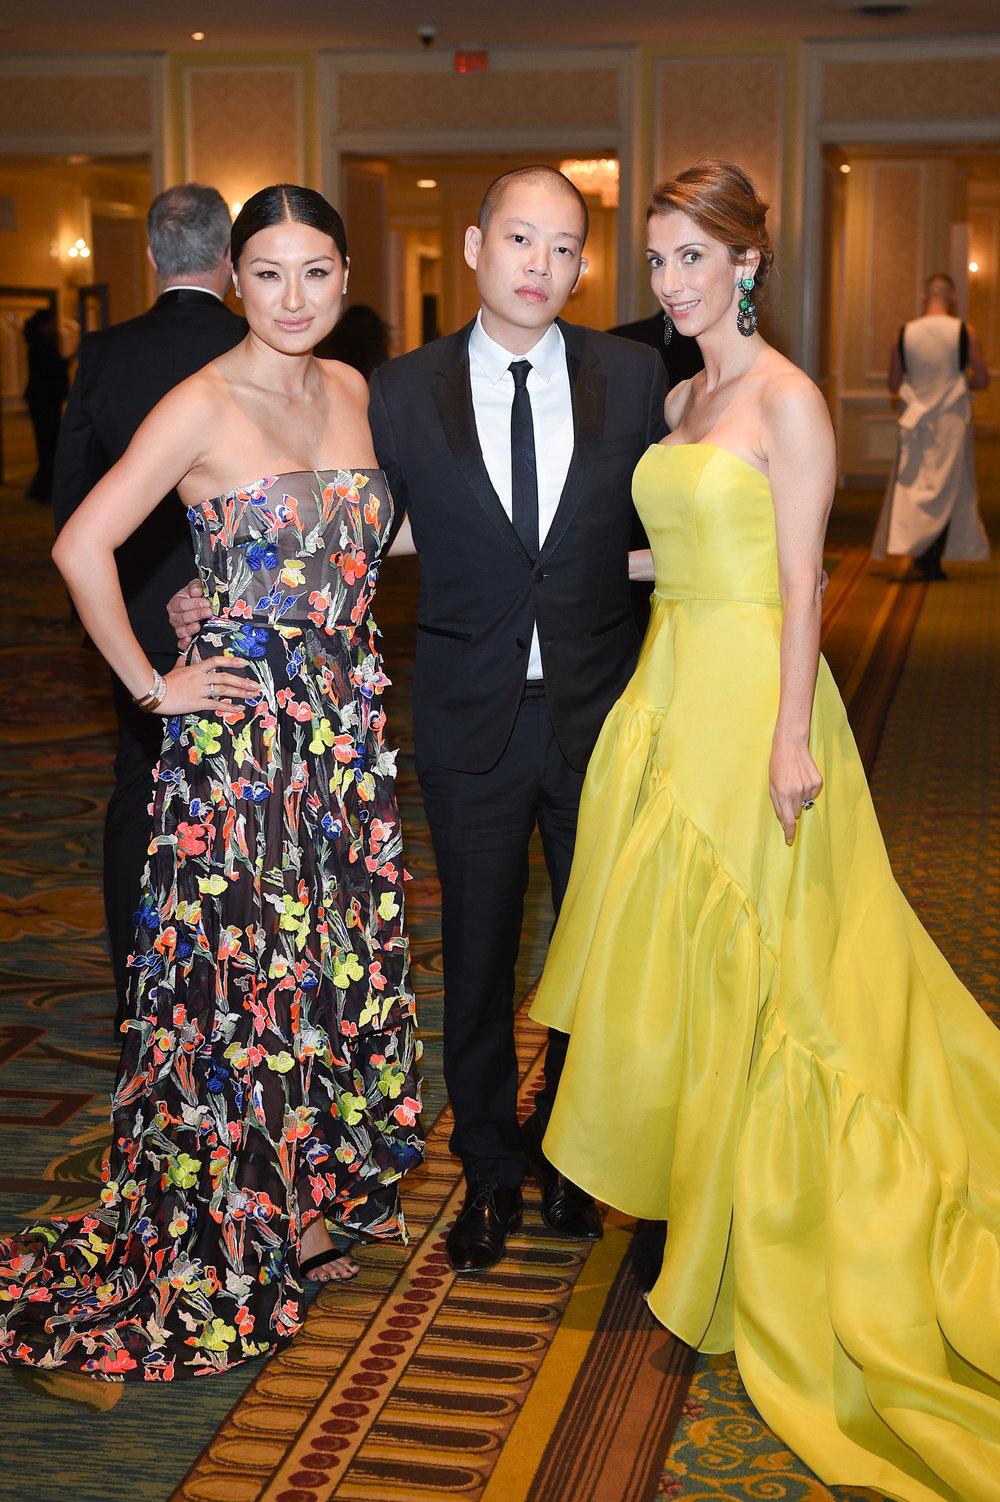 Vancouver-raised, New York-based Fashion designer Jason Wu (centre) attends the Canadian Arts and Fashion Awards at the Fairmount Royal York in Toronto